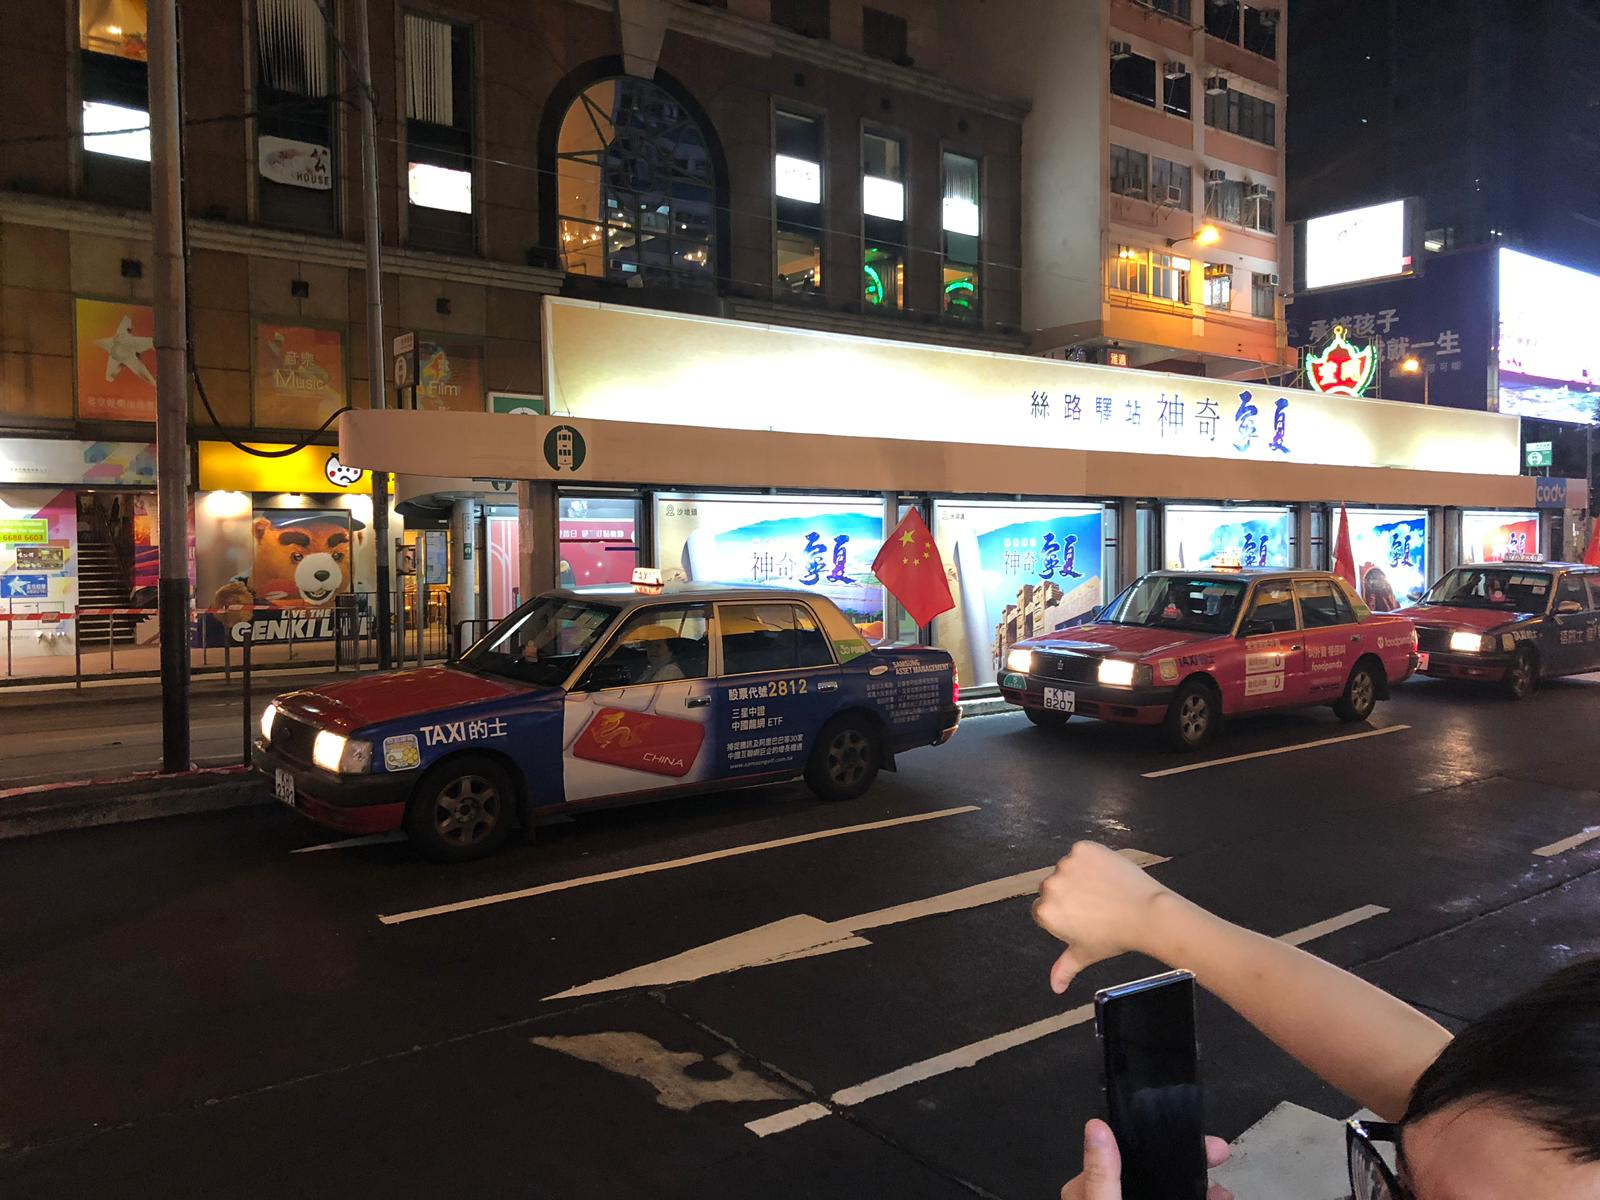 People yell at a taxi showing a Chinese flag.